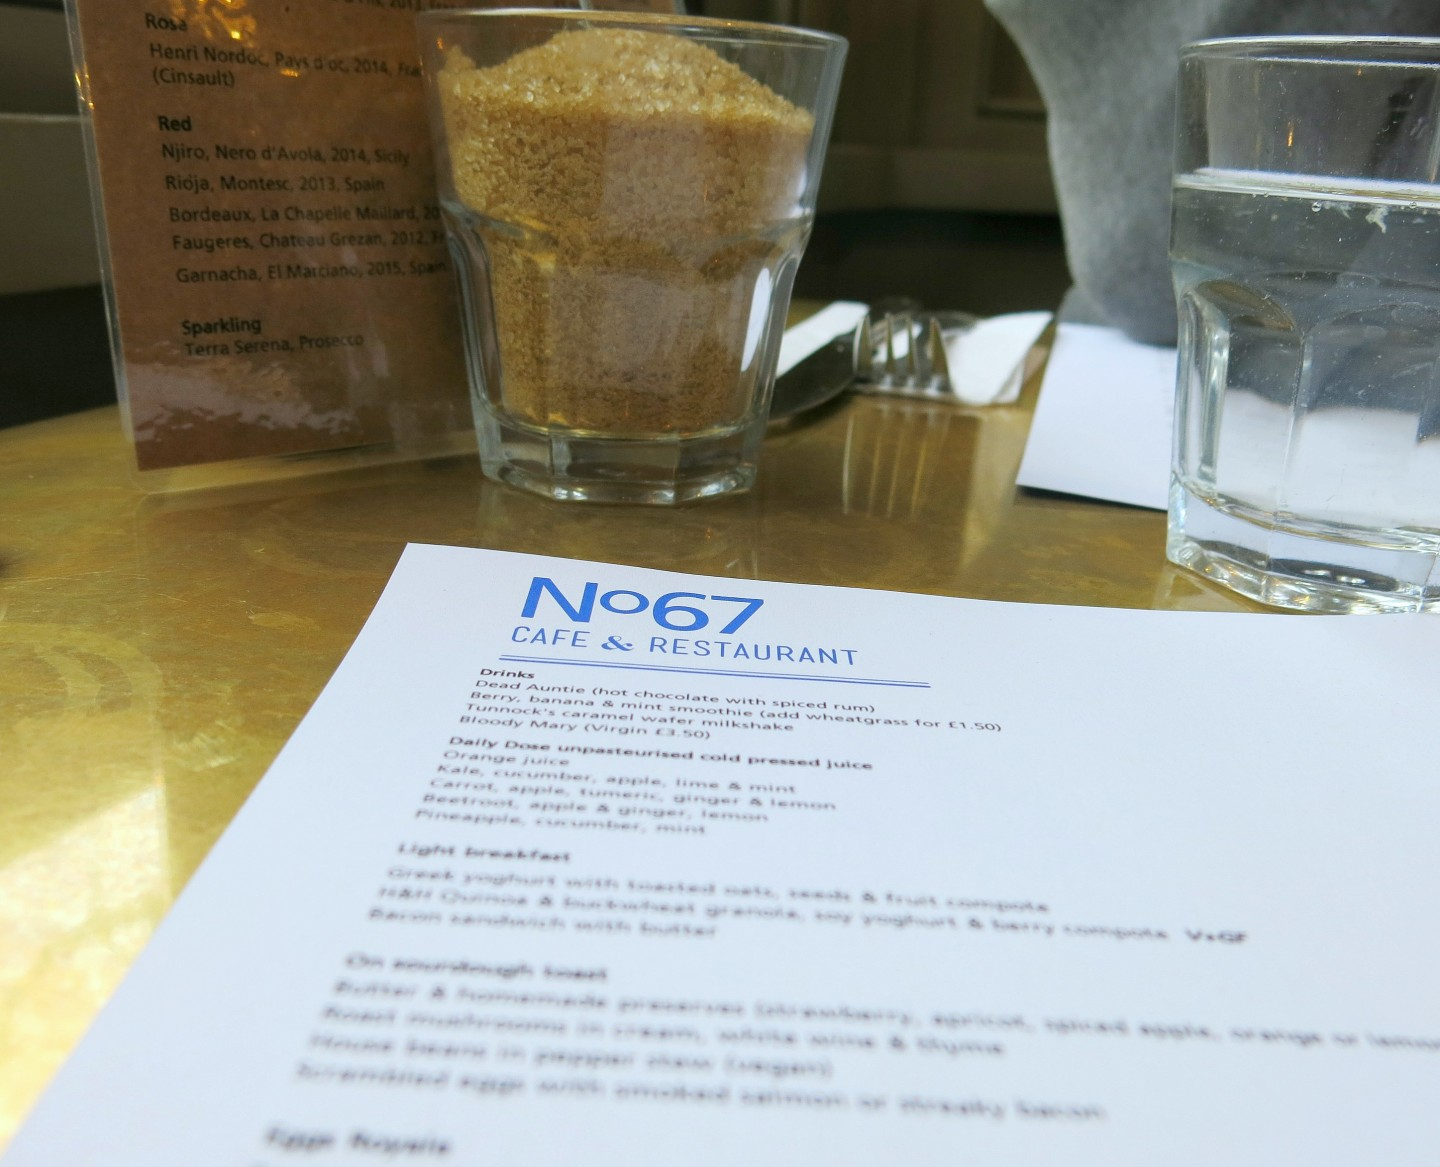 Brunch at No67 Cafe Peckham